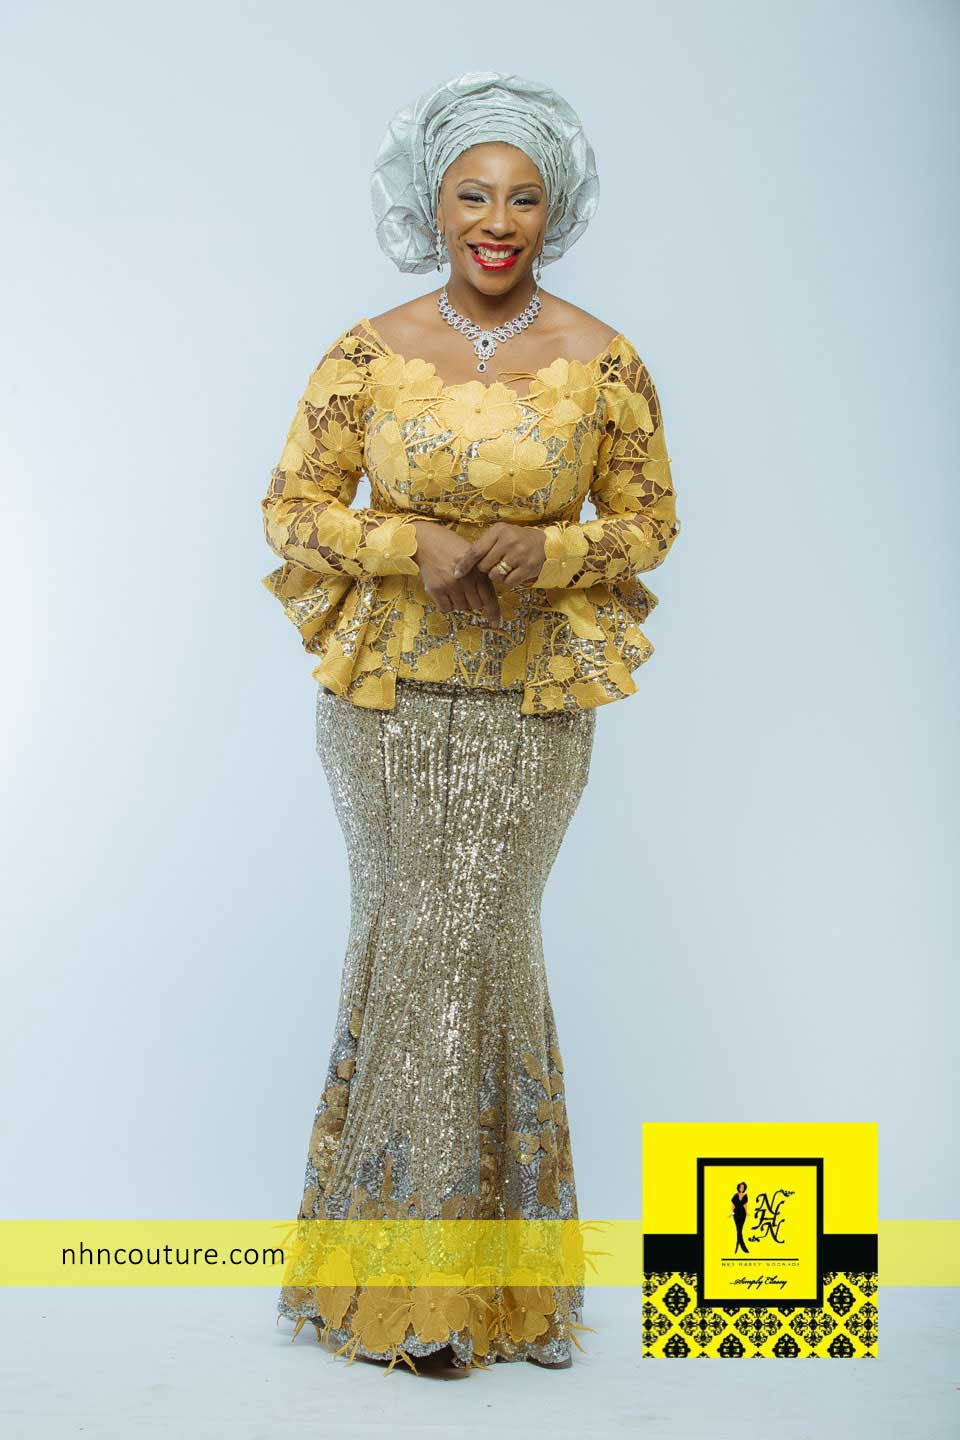 NHN-Couture-Gold-Ensemble